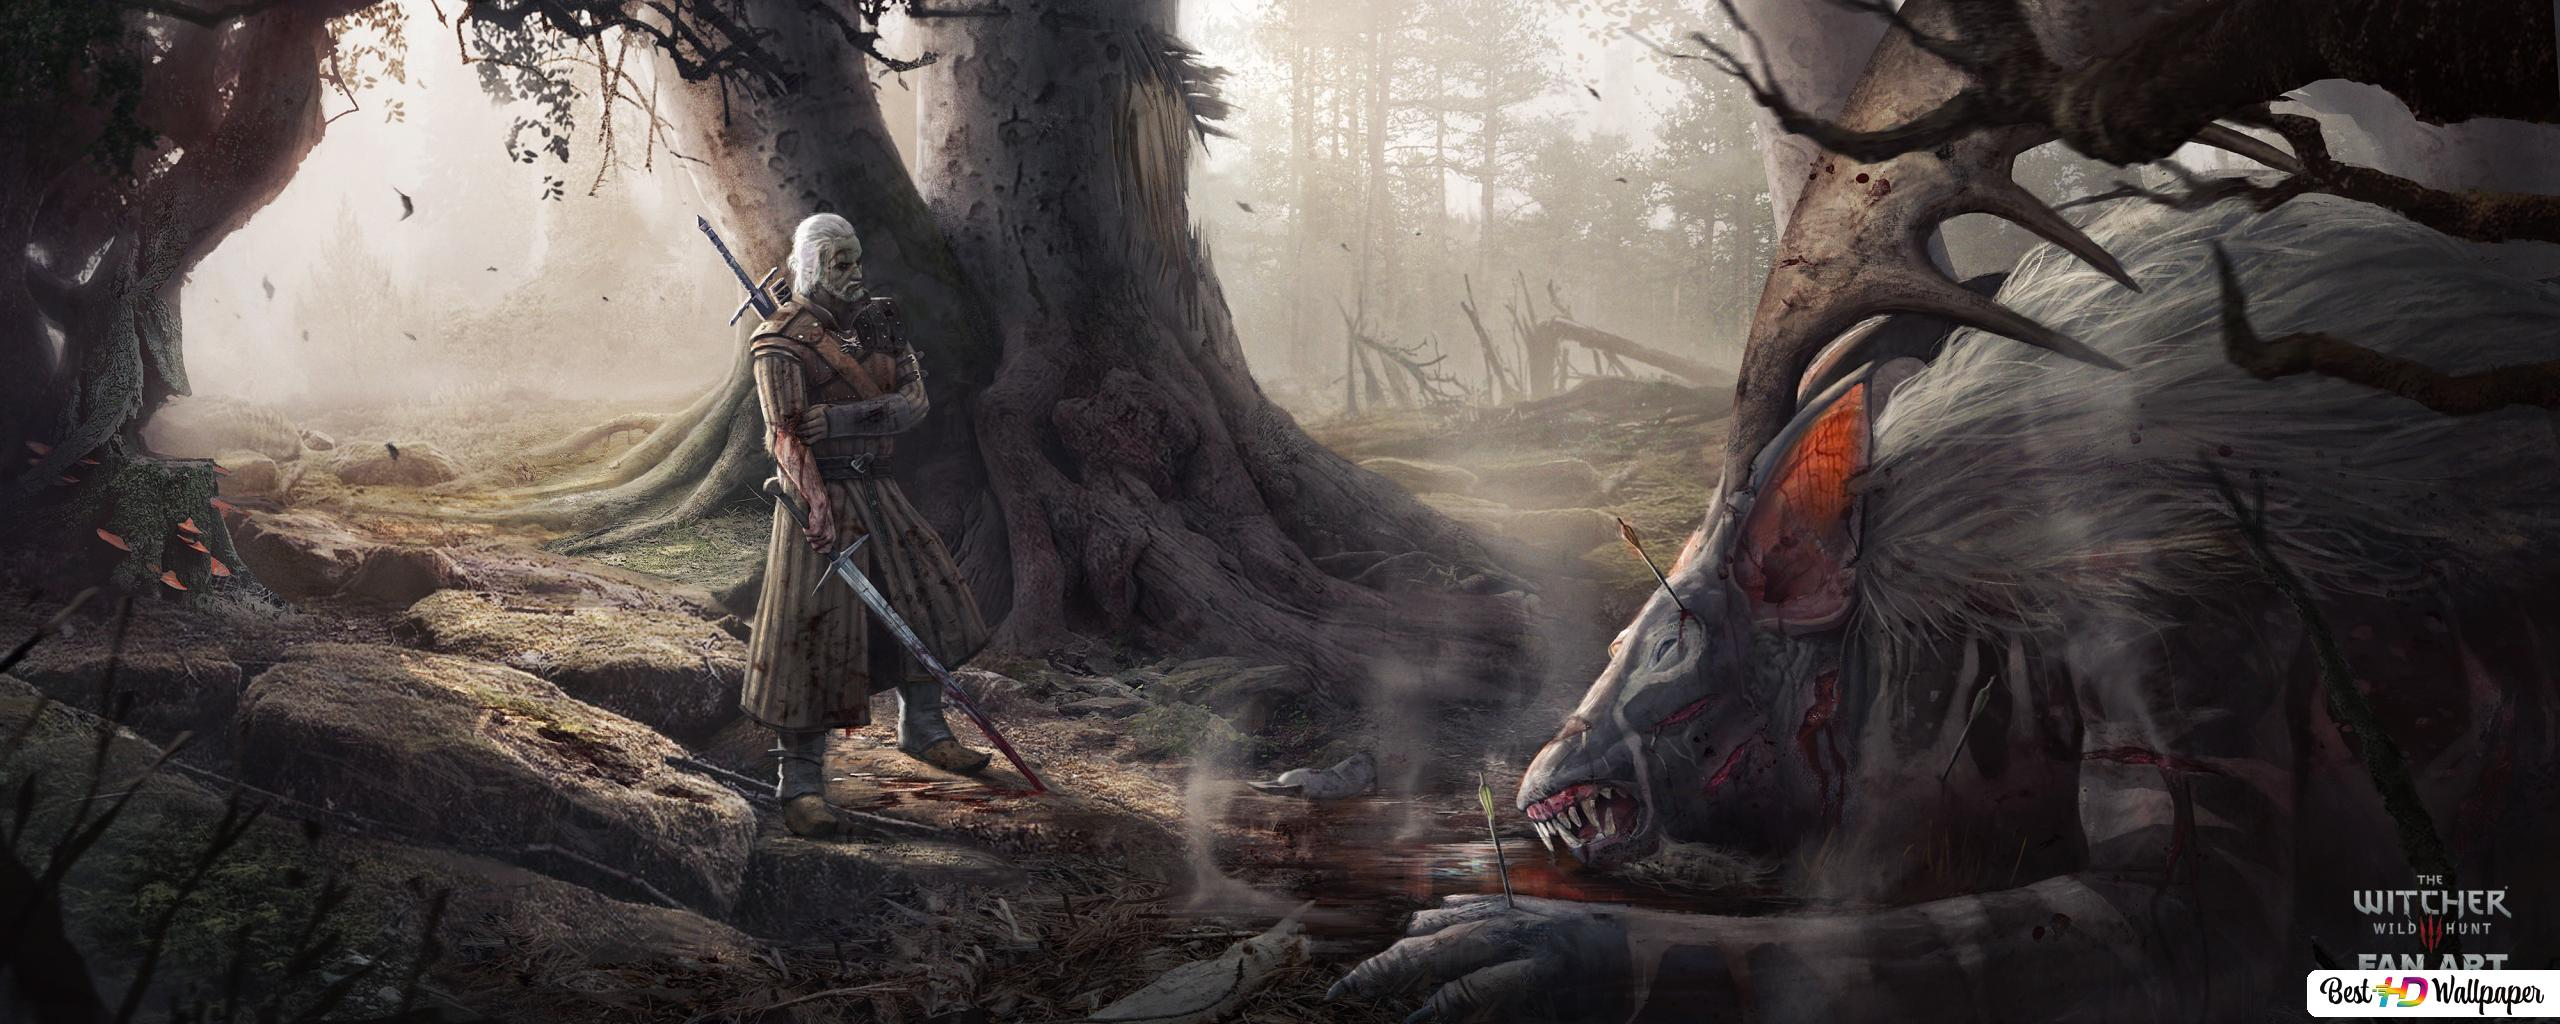 Descargar Fondo De Pantalla The Witcher 3 Wild Hunt